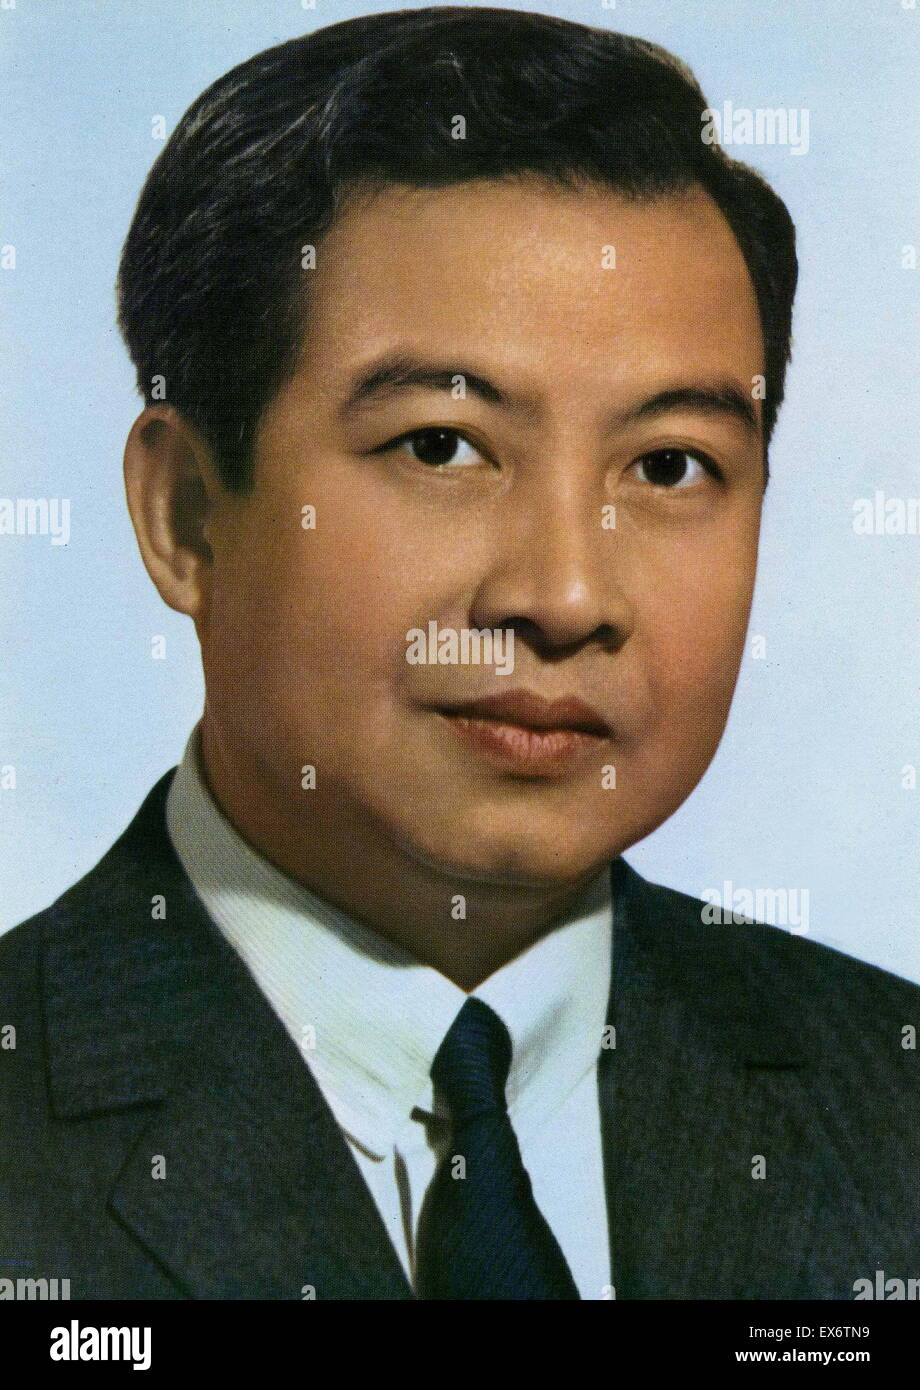 Norodom Sihanouk (1922 – 15 October 2012) King of Cambodia from 1941 to 1955 and again from 1993 to 2005. He was Stock Photo